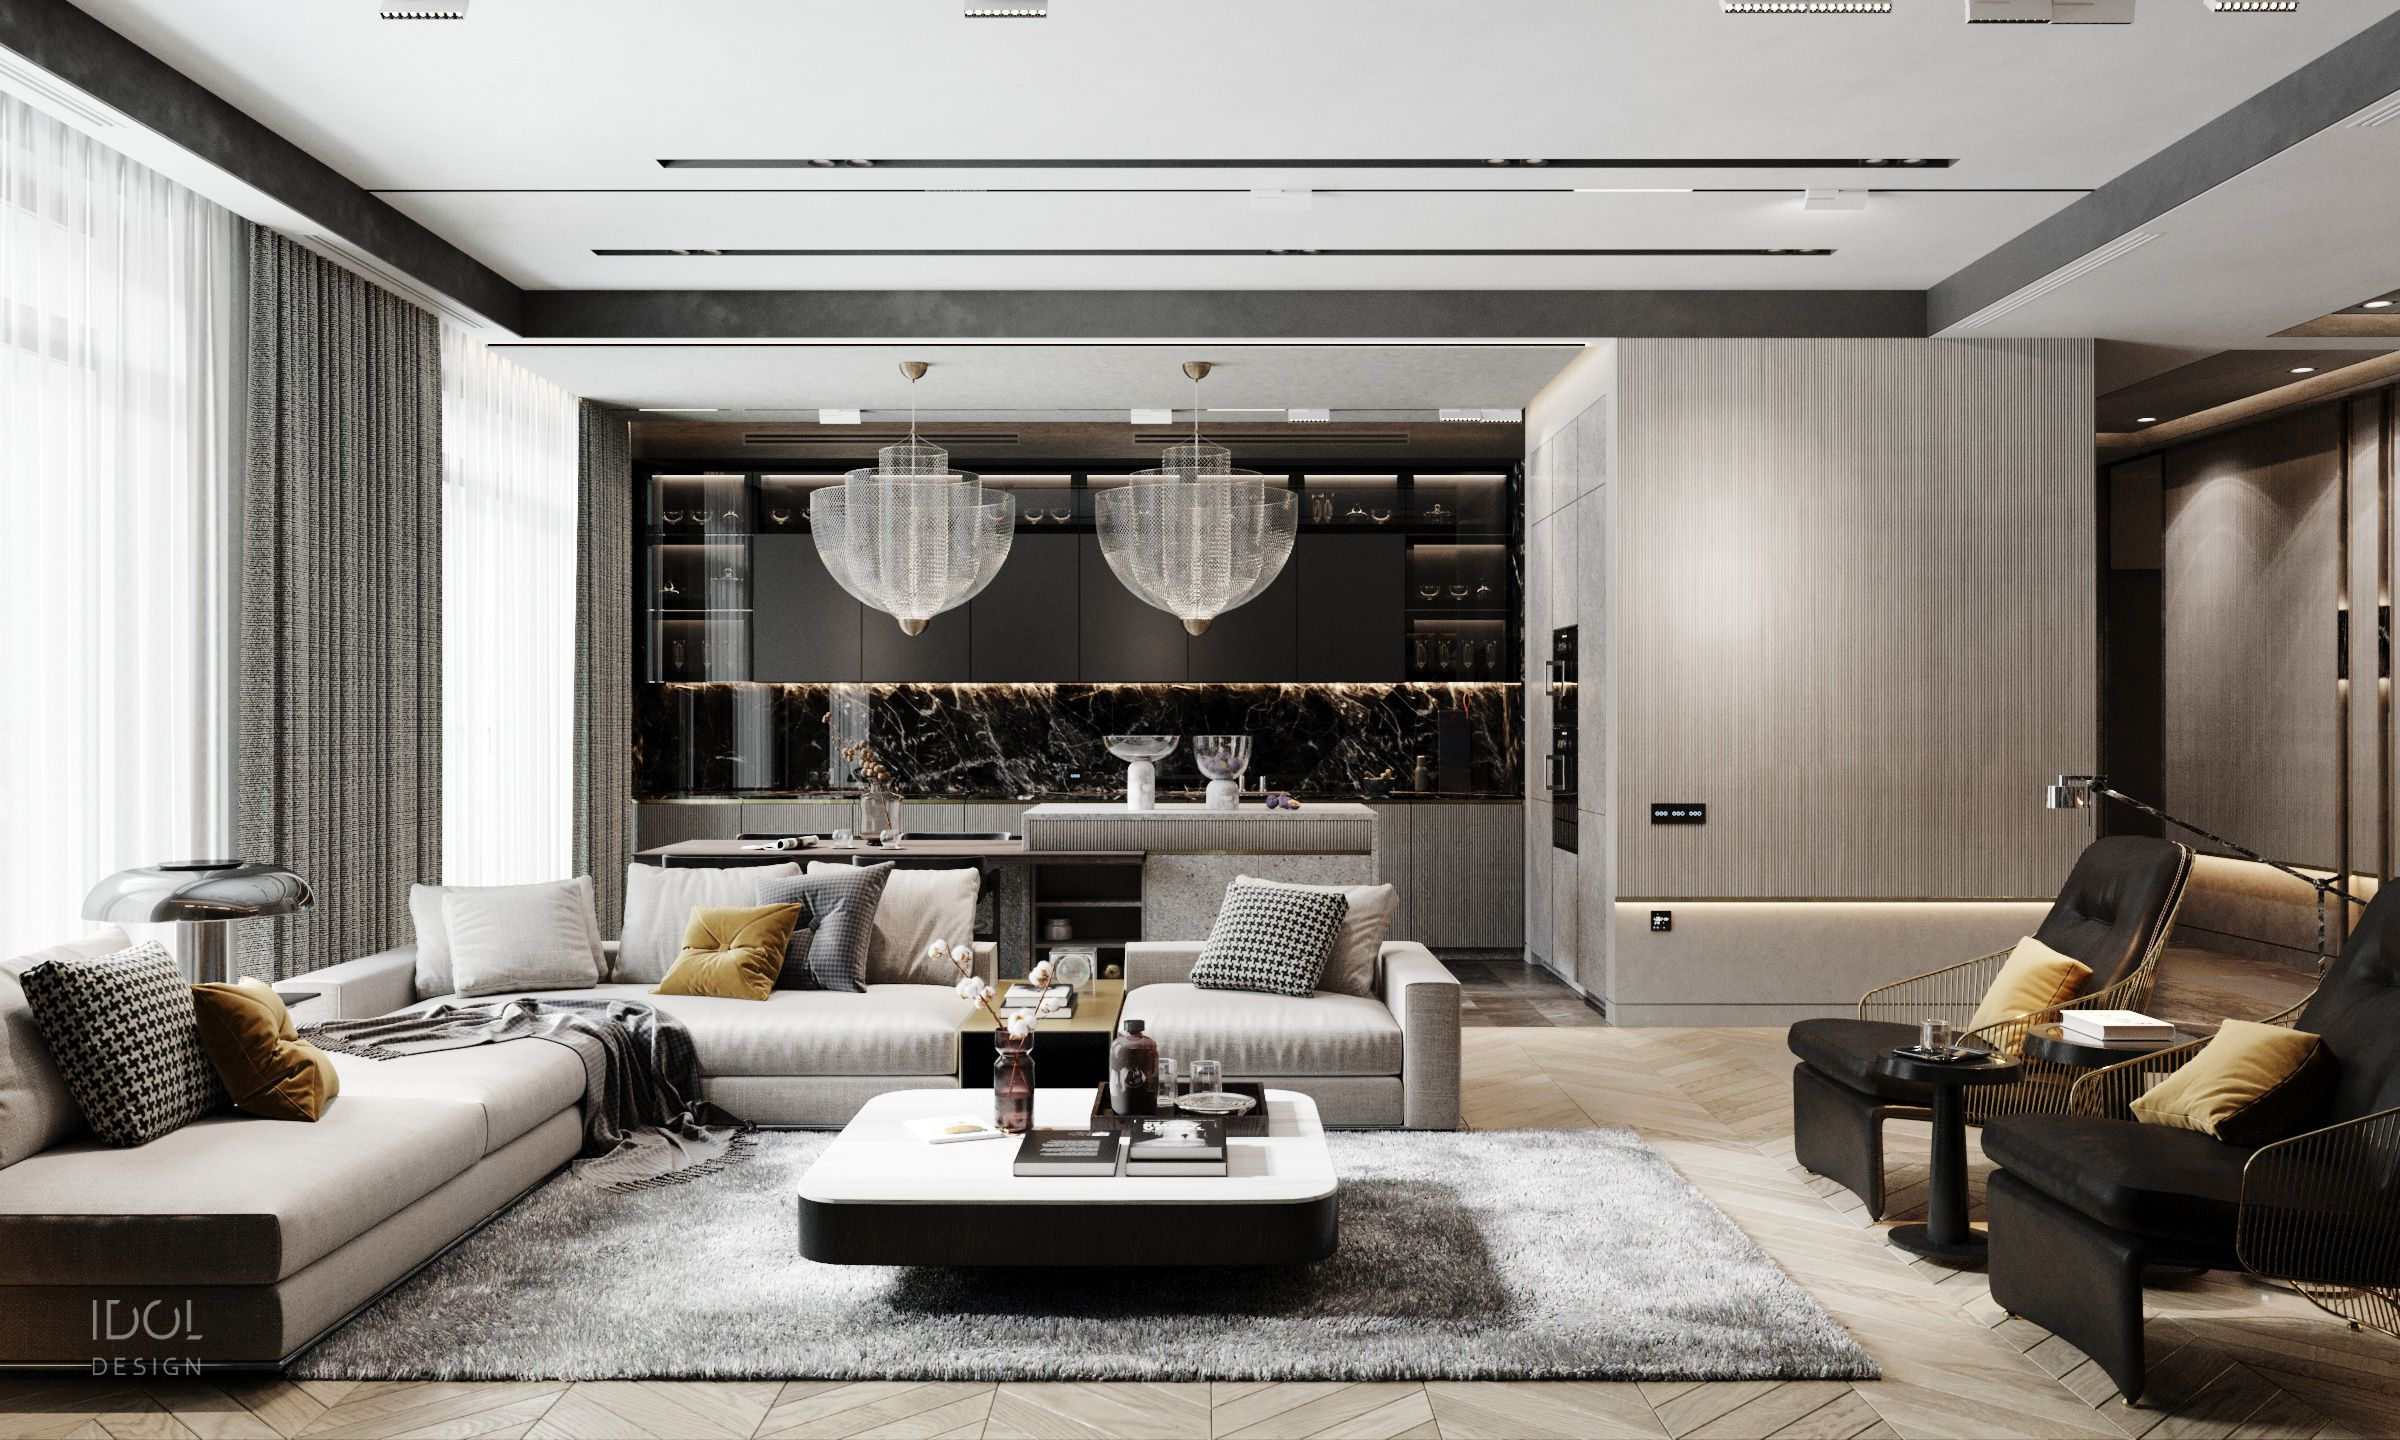 Luxurious Modern Kitchen Living Room In Silver Tones From Idol